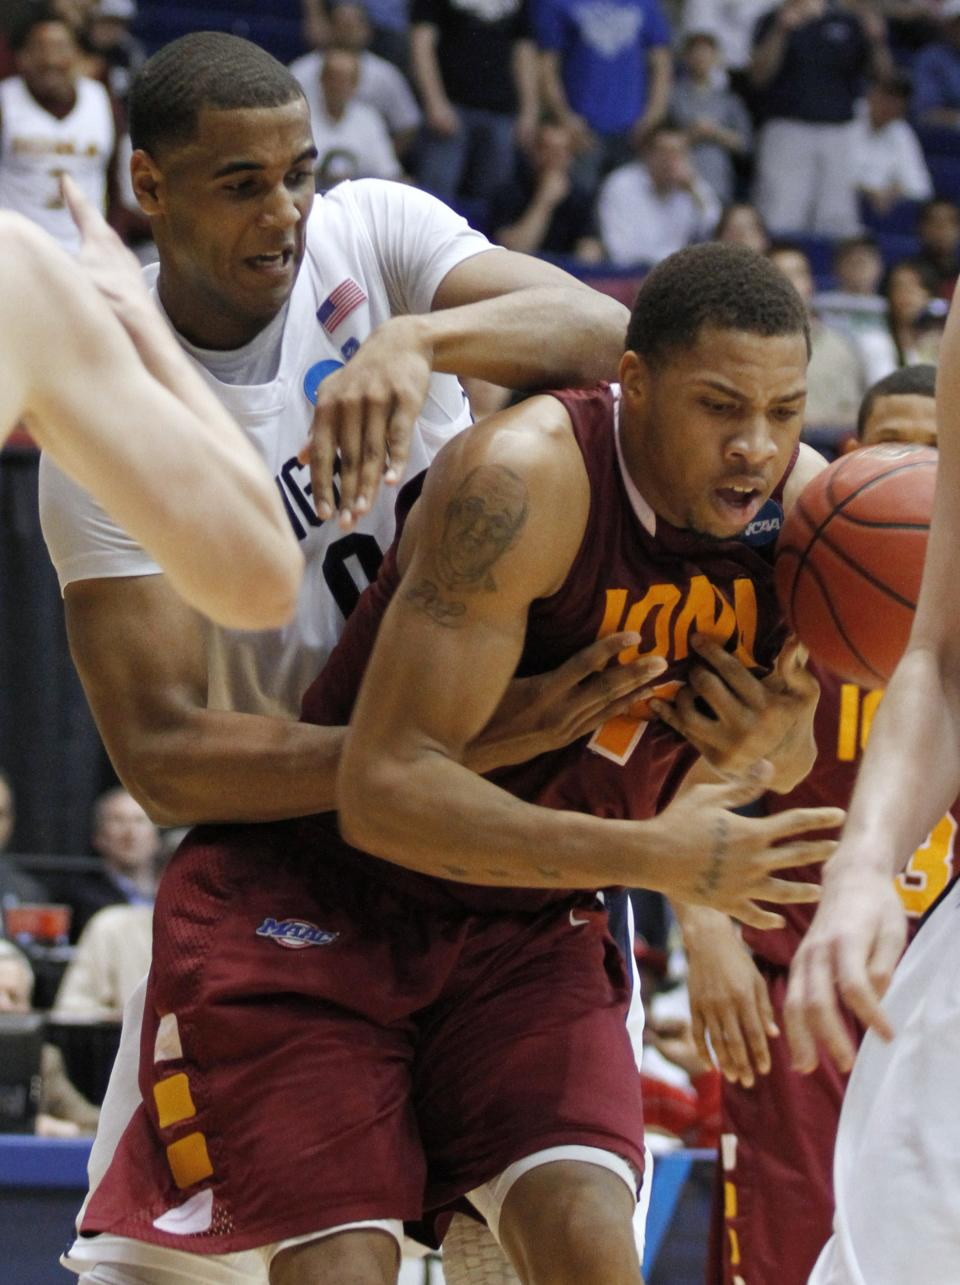 Brigham Young forward Brandon Davies, left, knocks the ball loose from Iona forward Mike Glover in the second half of an NCAA men's college basketball tournament opening-round game, Tuesday, March 13, 2012, in Dayton, Ohio. (AP Photo/Skip Peterson)